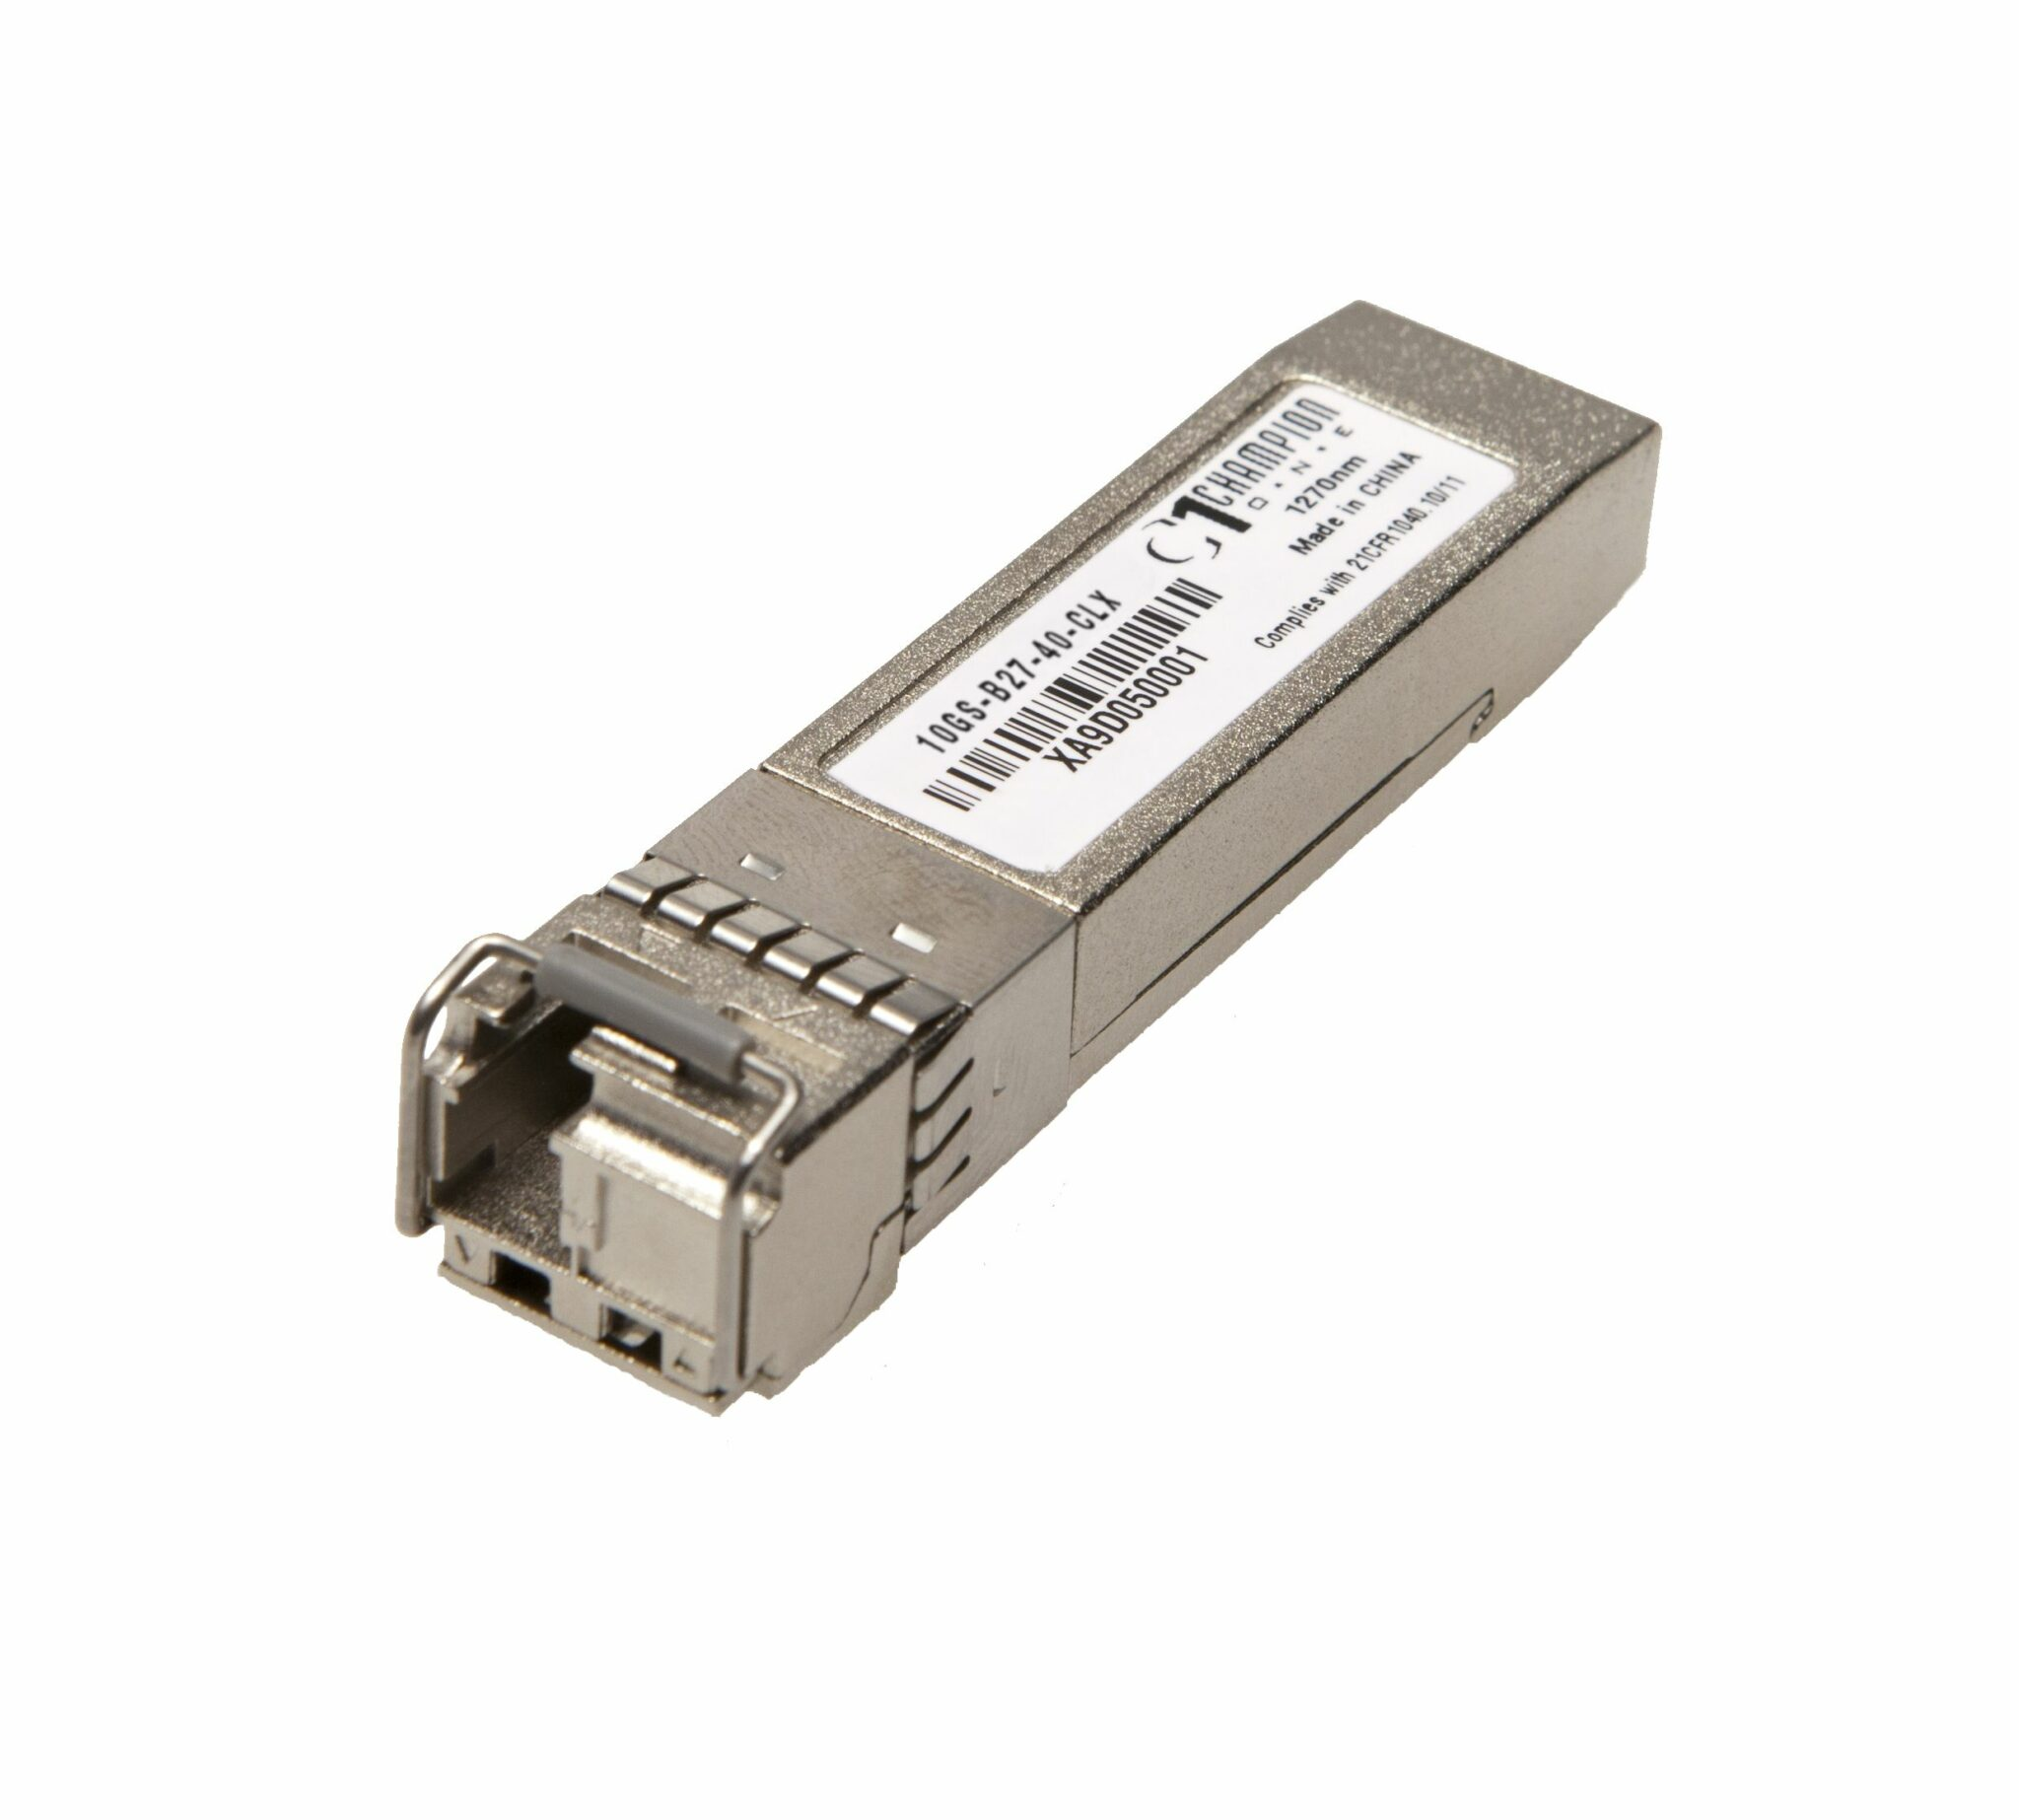 SFP+ SF 10GBase-ER 1270nm 40km, Calix compatible